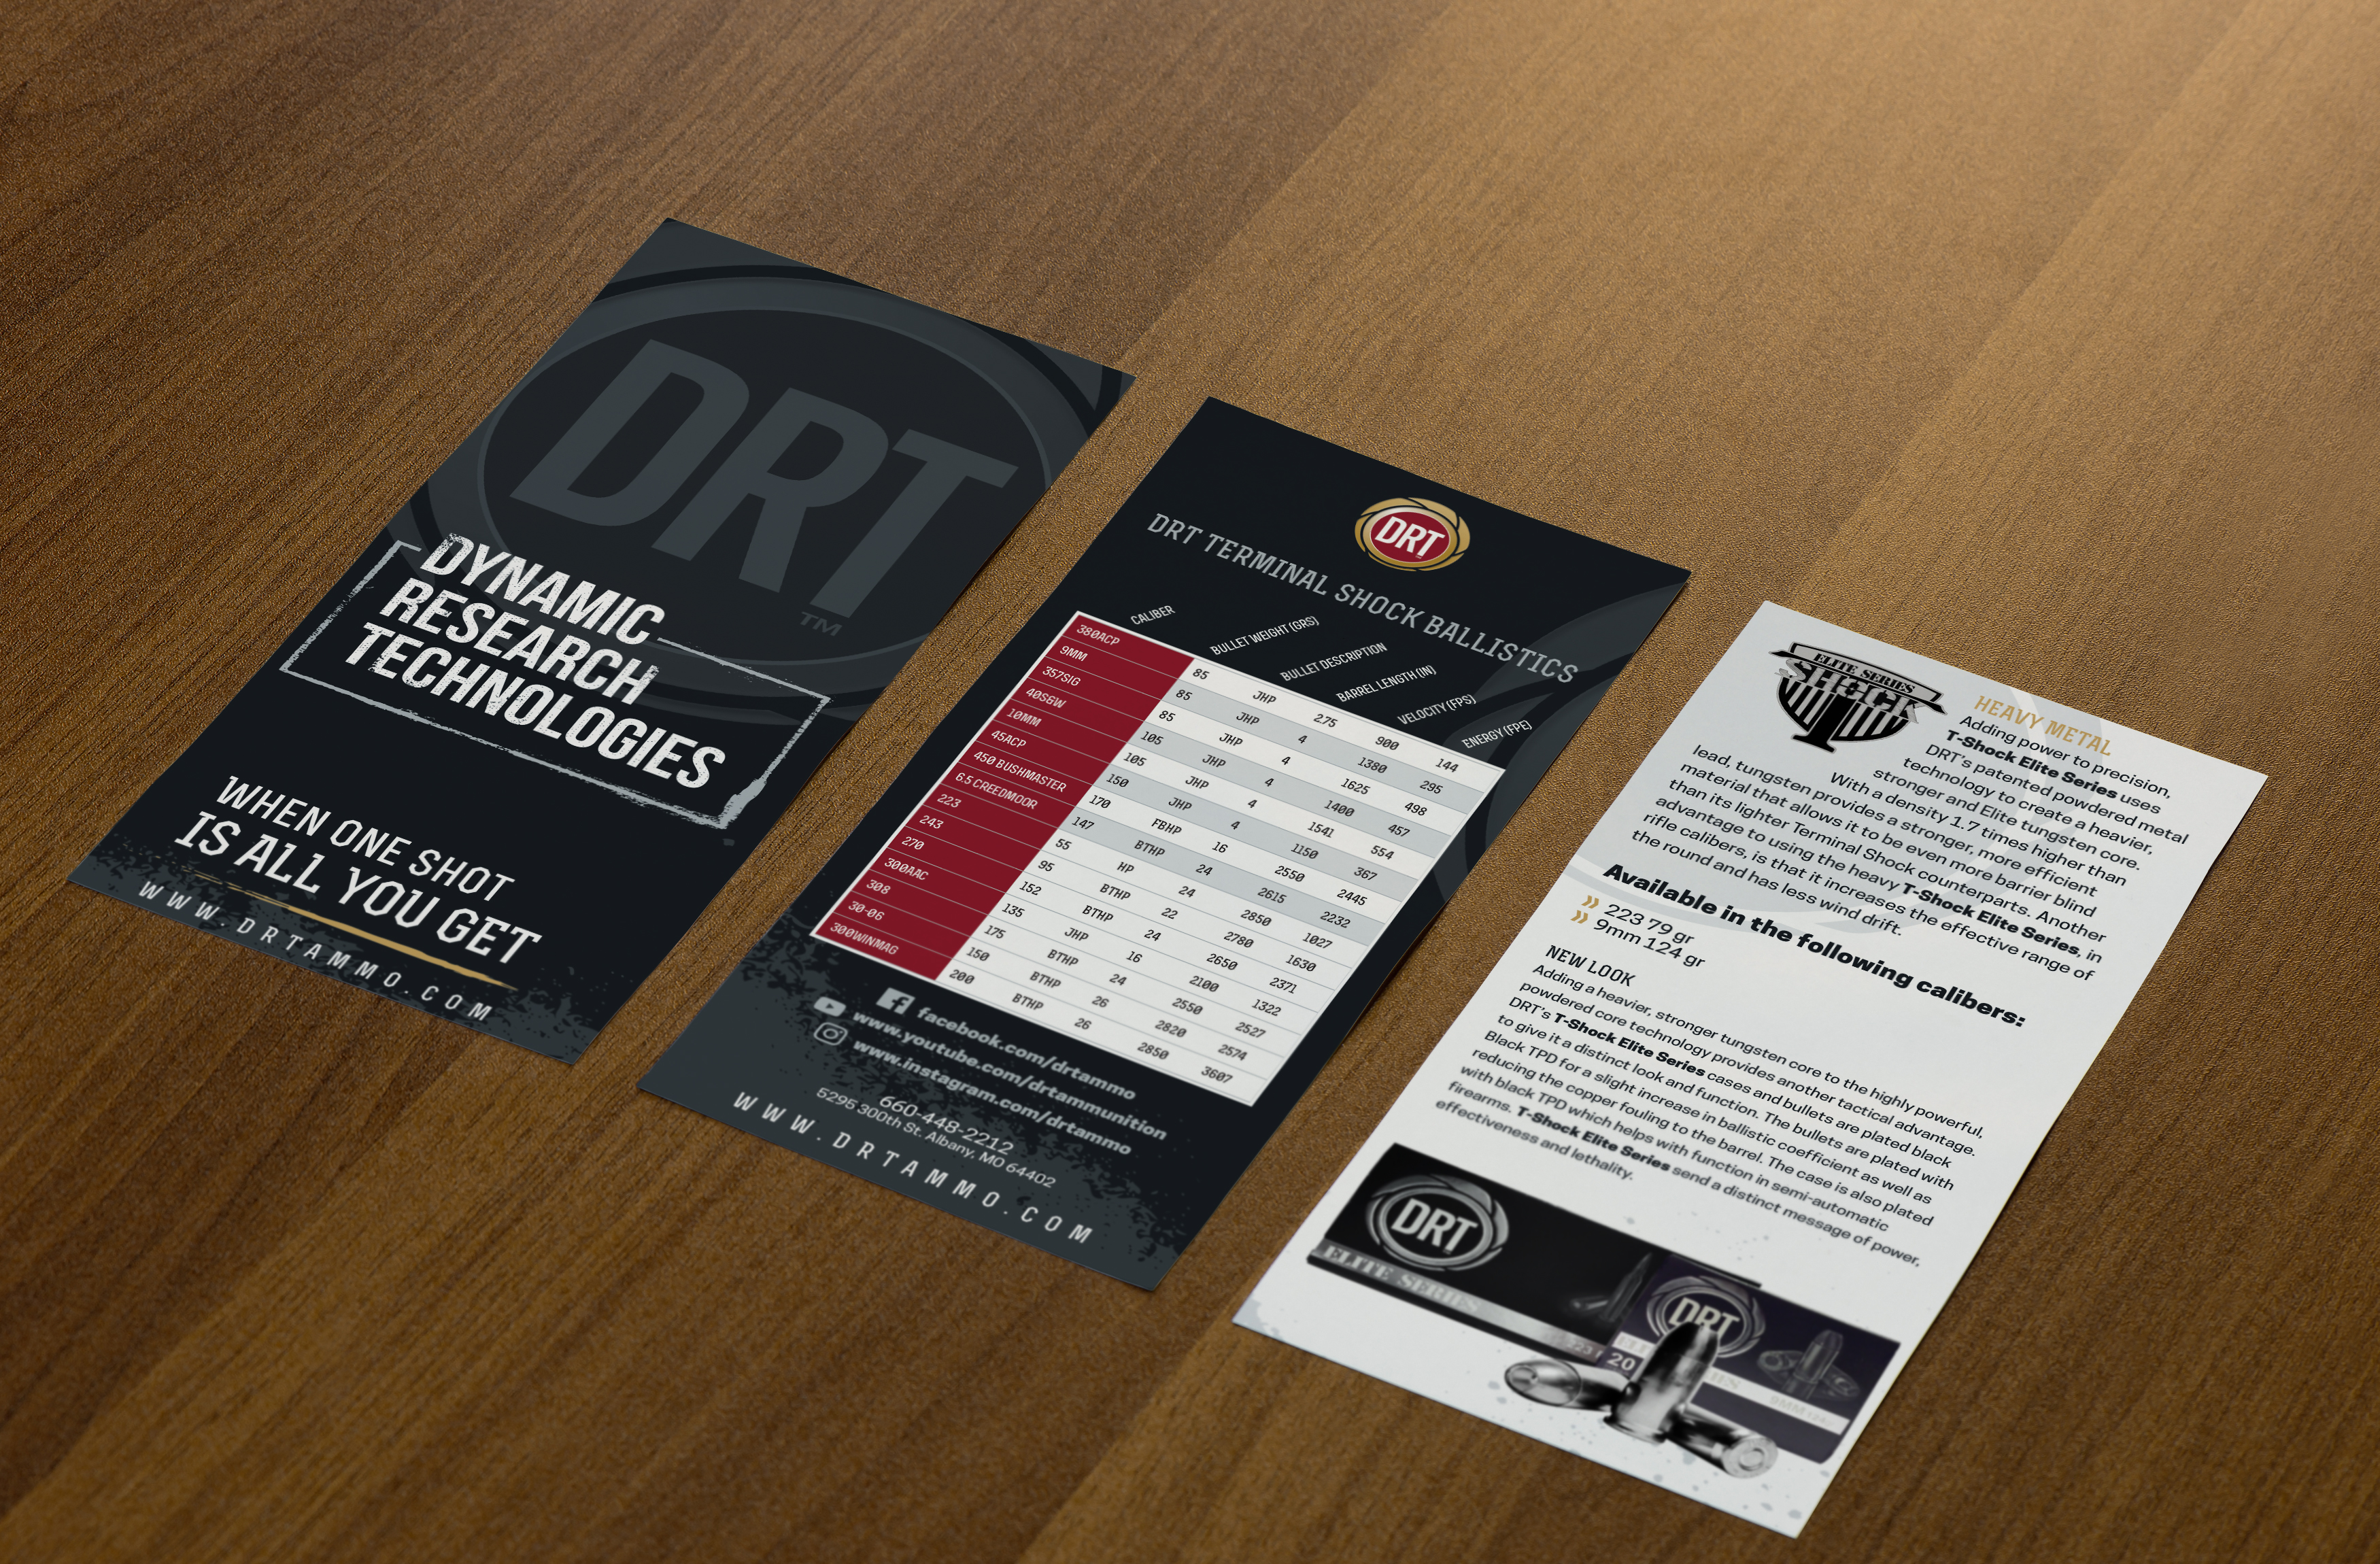 DRT ammunition tri-fold brochure: outside